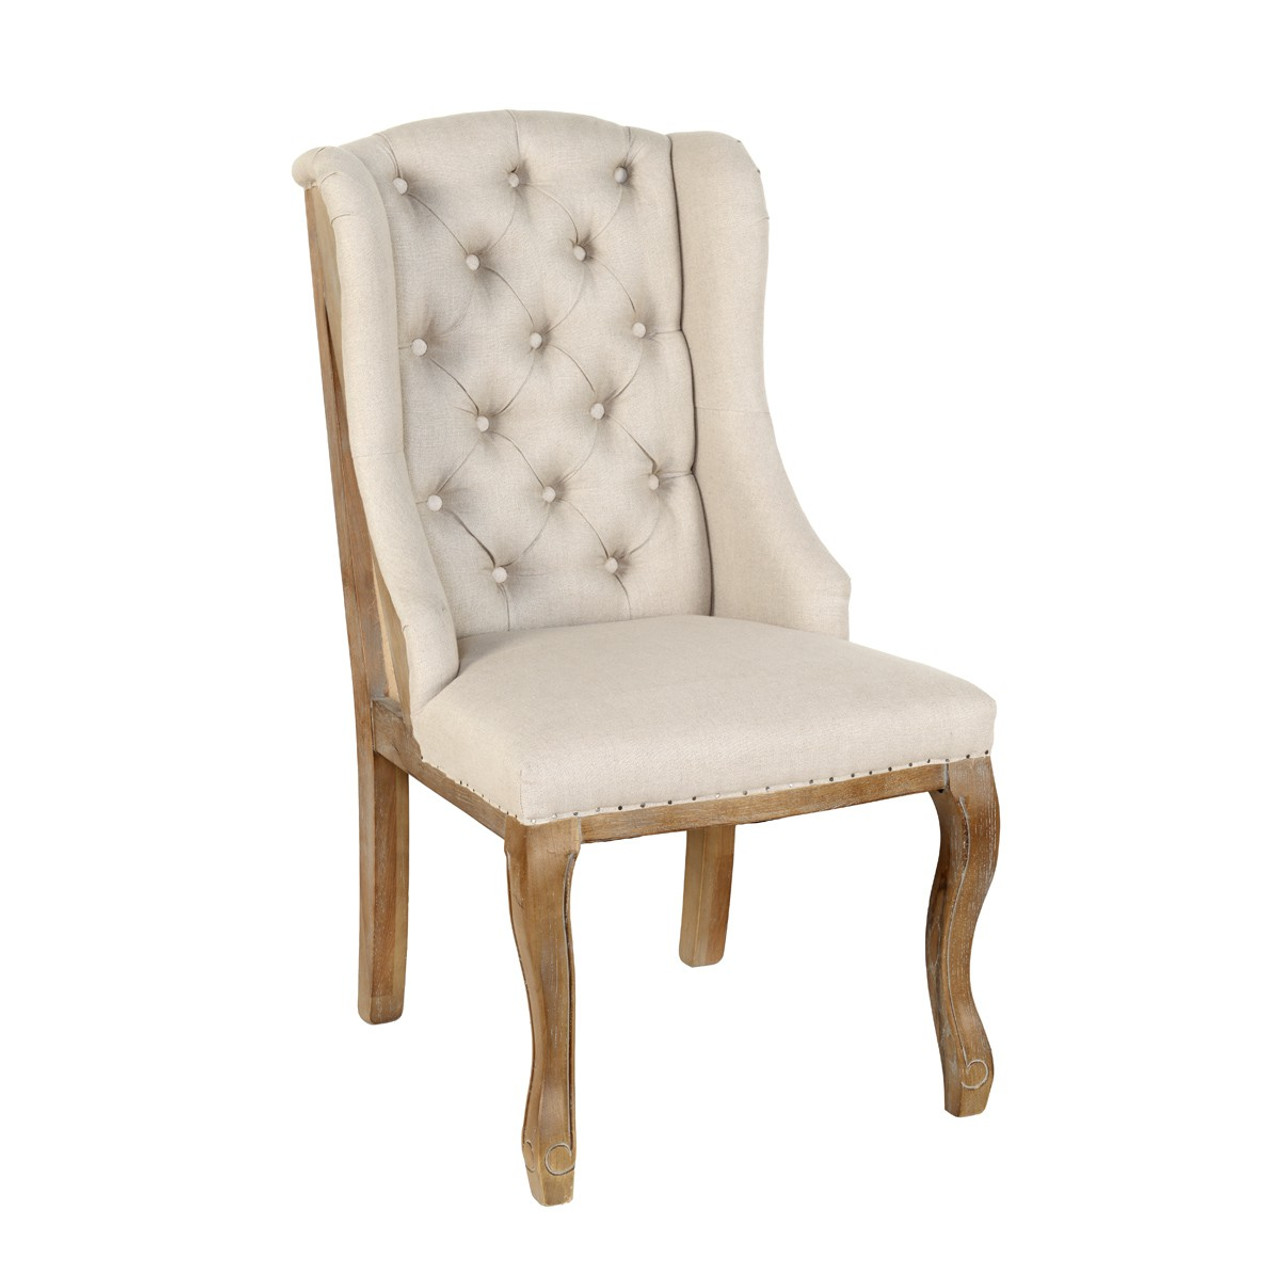 Deconstructed Beige Linen Wingback Dining Chair